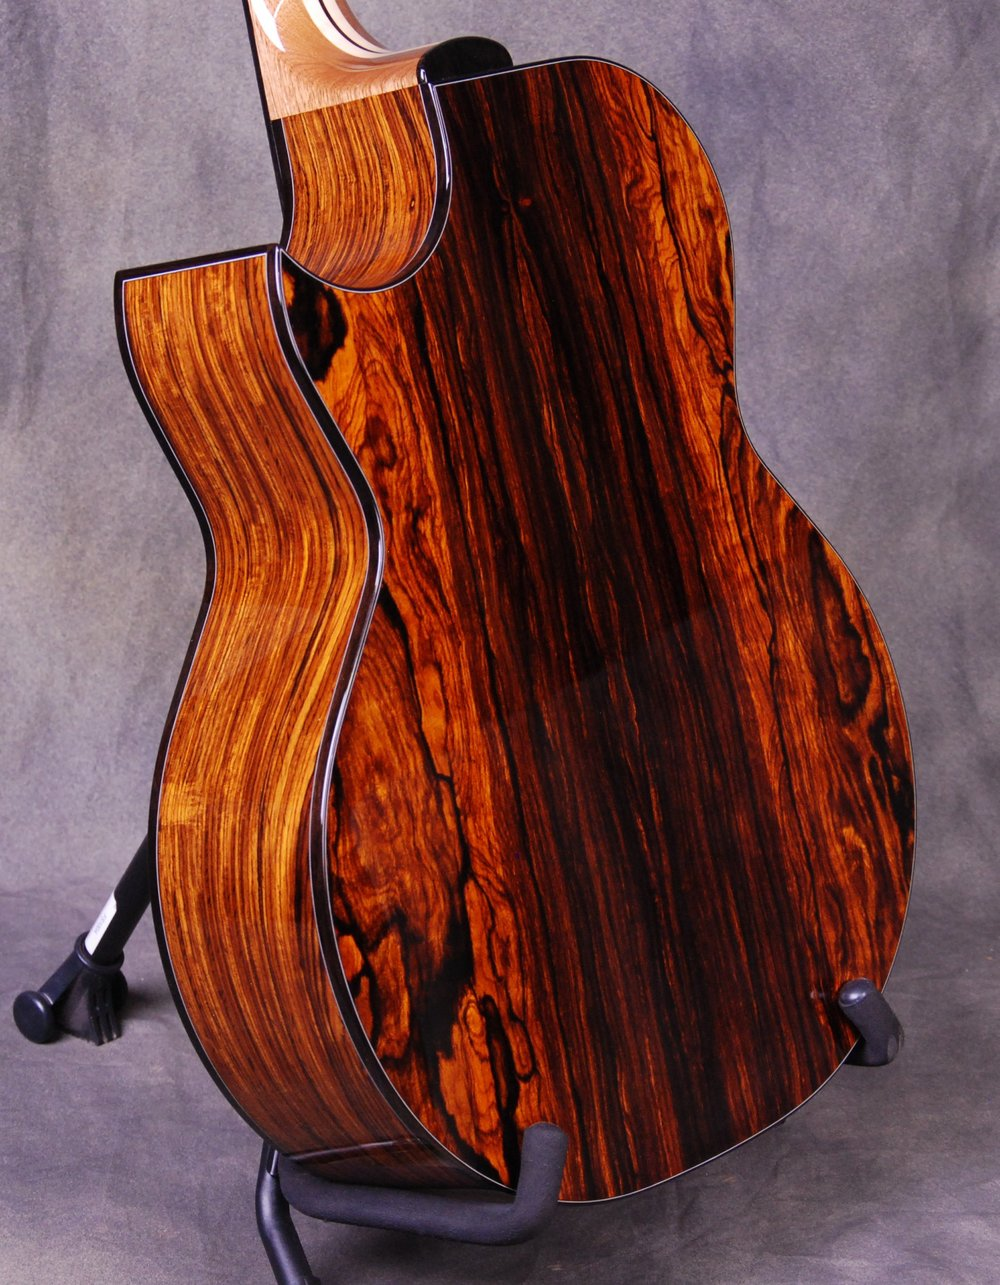 S/N 421 - Cocobolo Back/Sides, Euro/Swiss Spruce Top